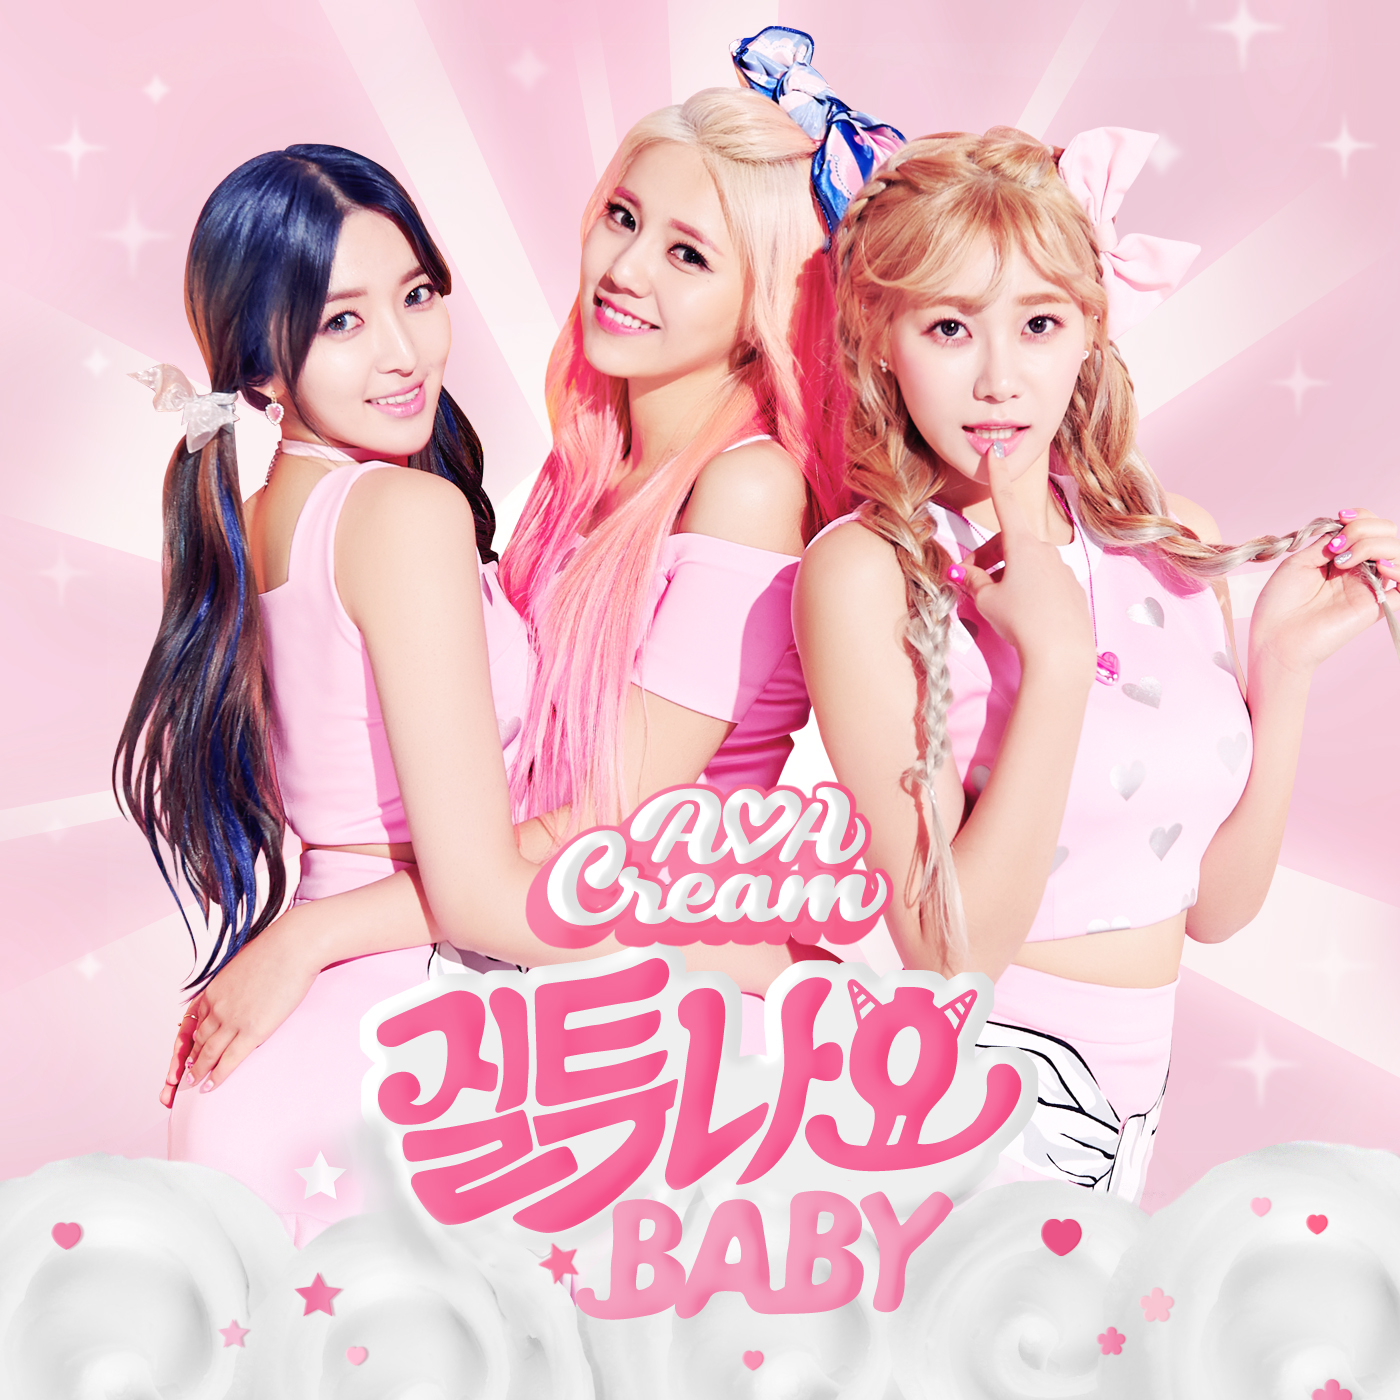 AOA Cream - I'm Jelly Baby K2Ost free mp3 download korean song kpop kdrama ost lyric 320 kbps